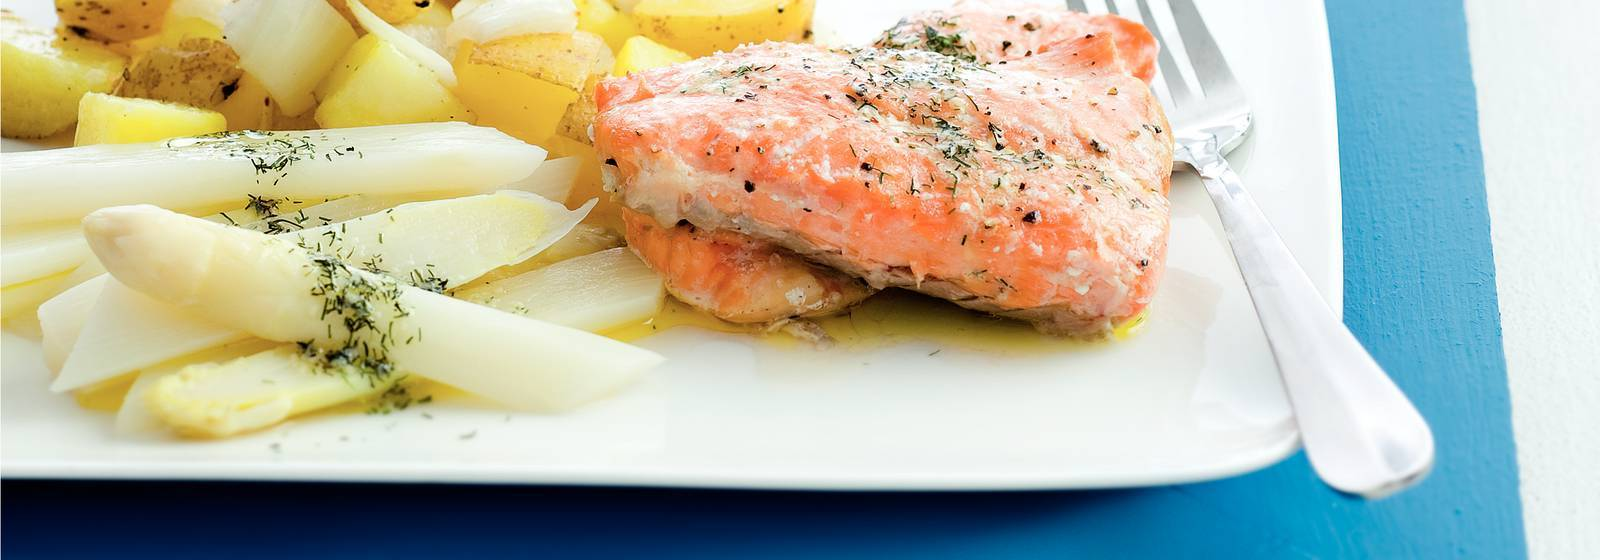 Asparagus with salmon and dill butter